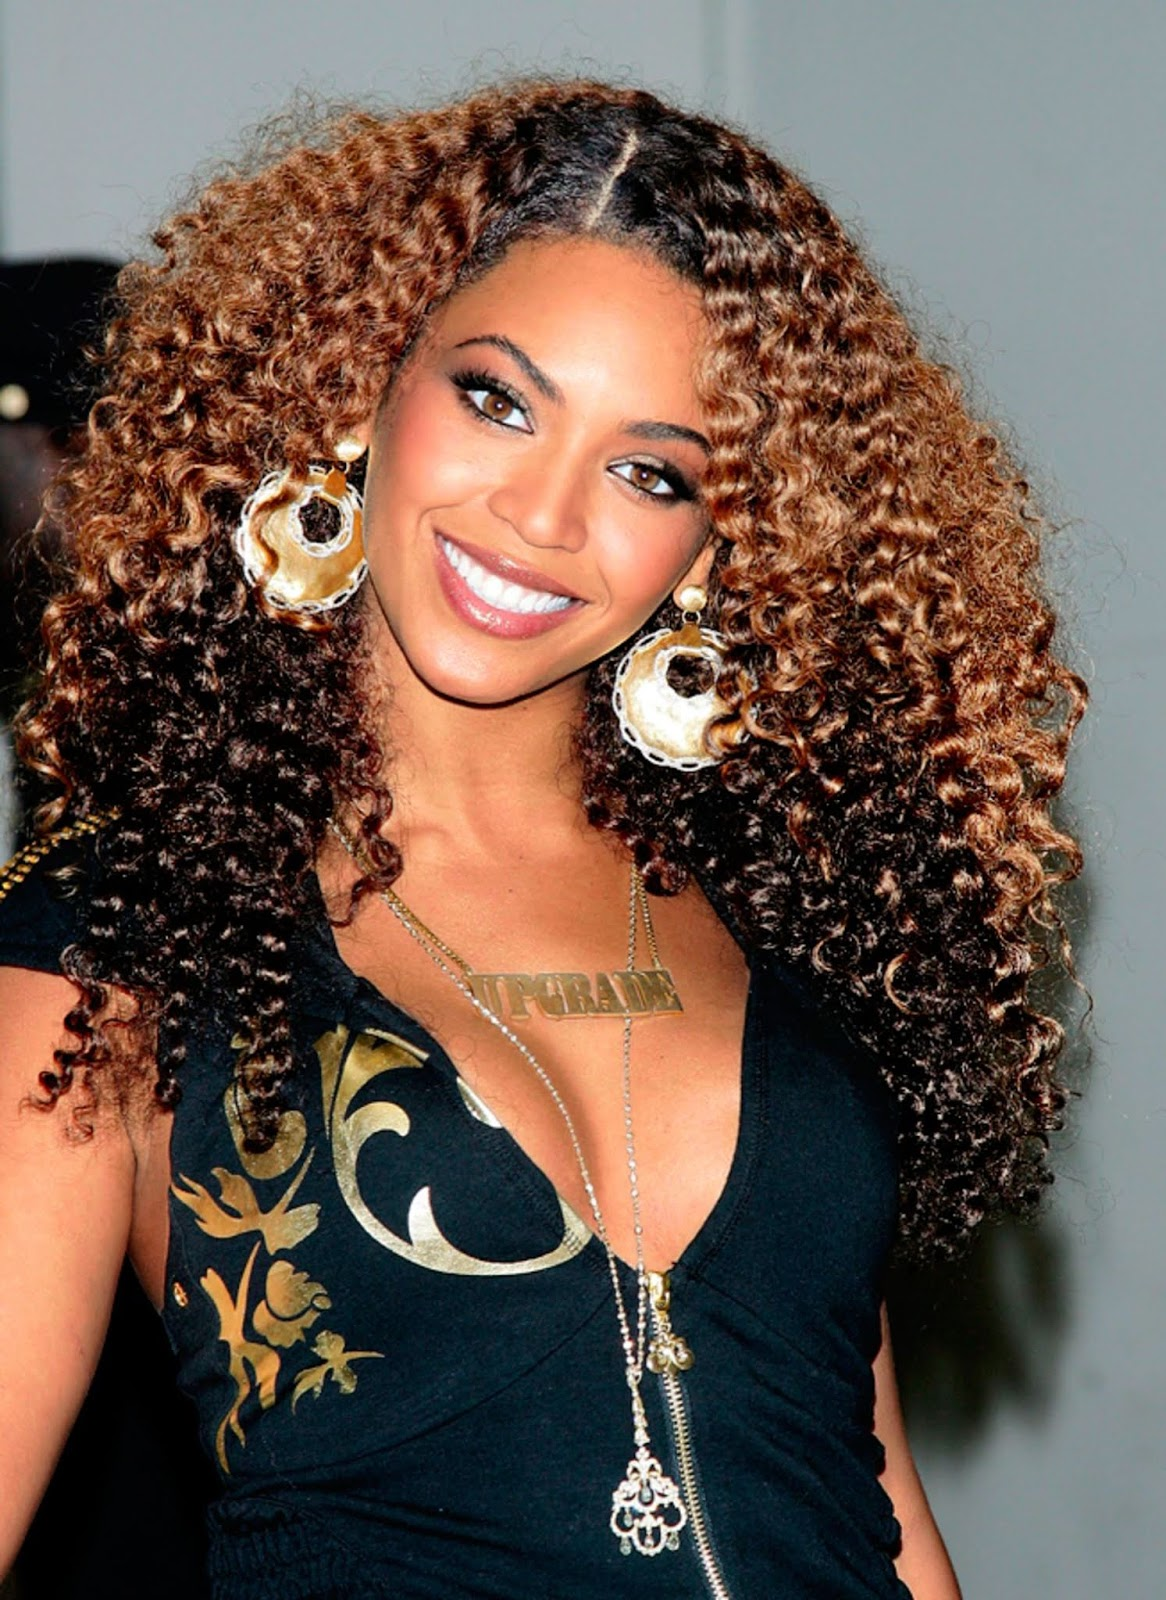 Beyonce's curly hair